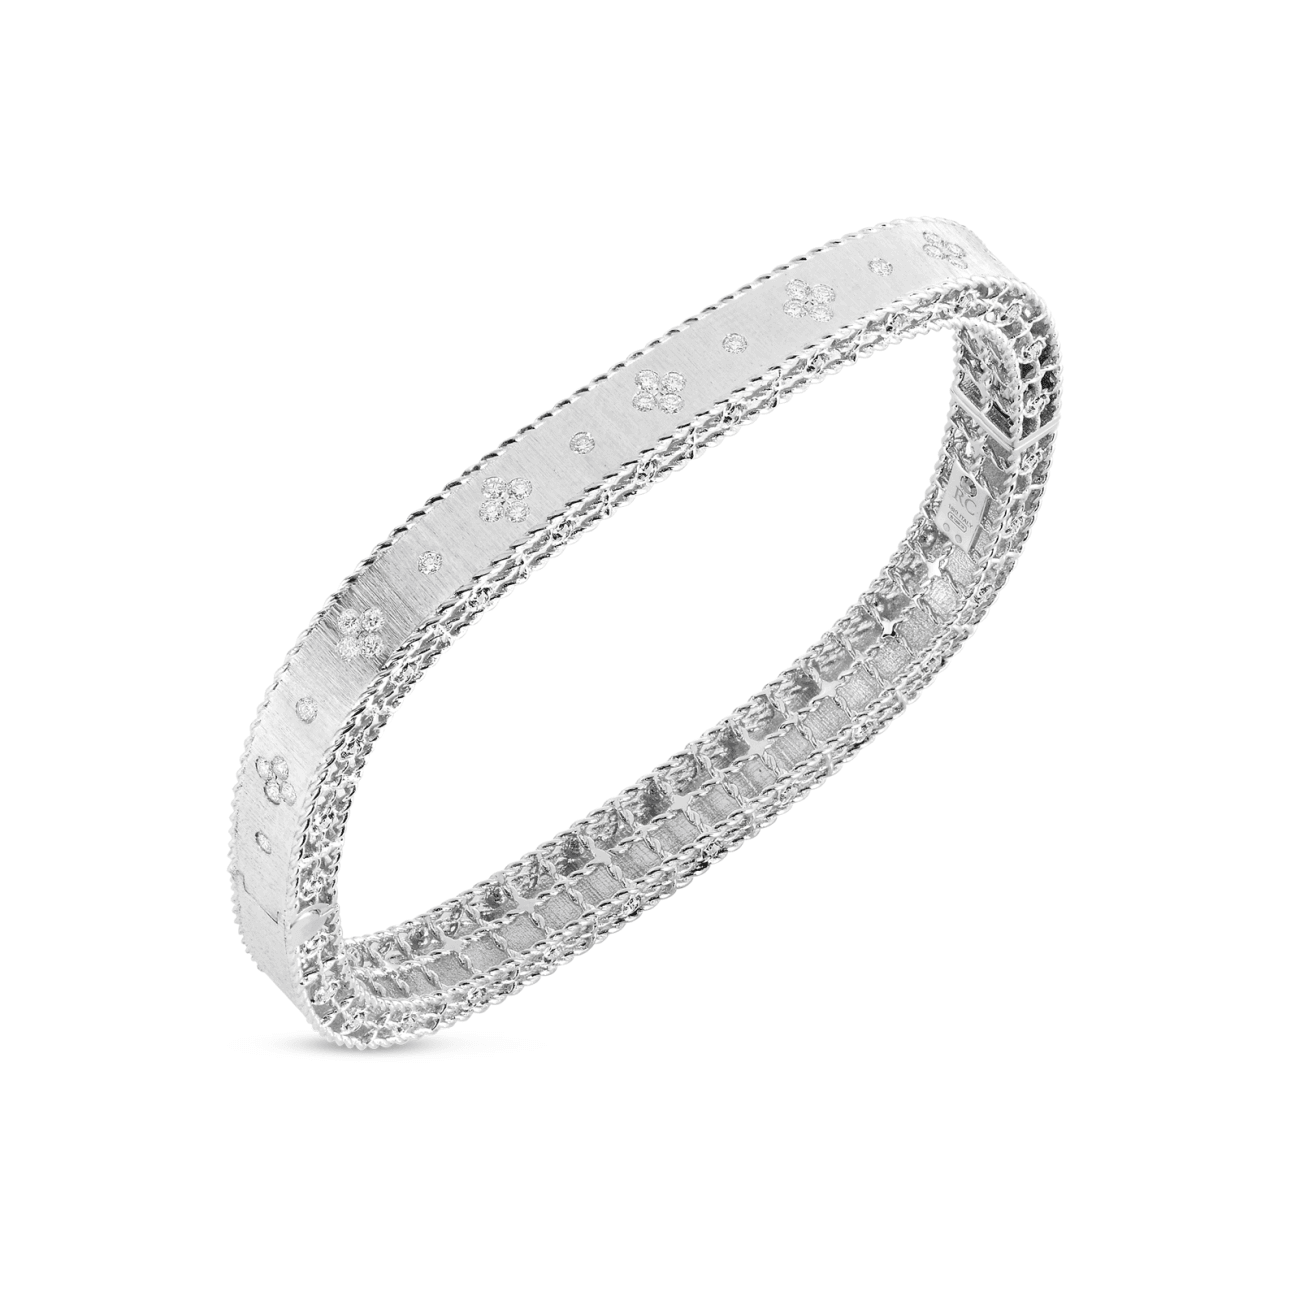 Roberto Coin Jewelry - White Gold Princesse diamond bangle | Manfredi Jewels